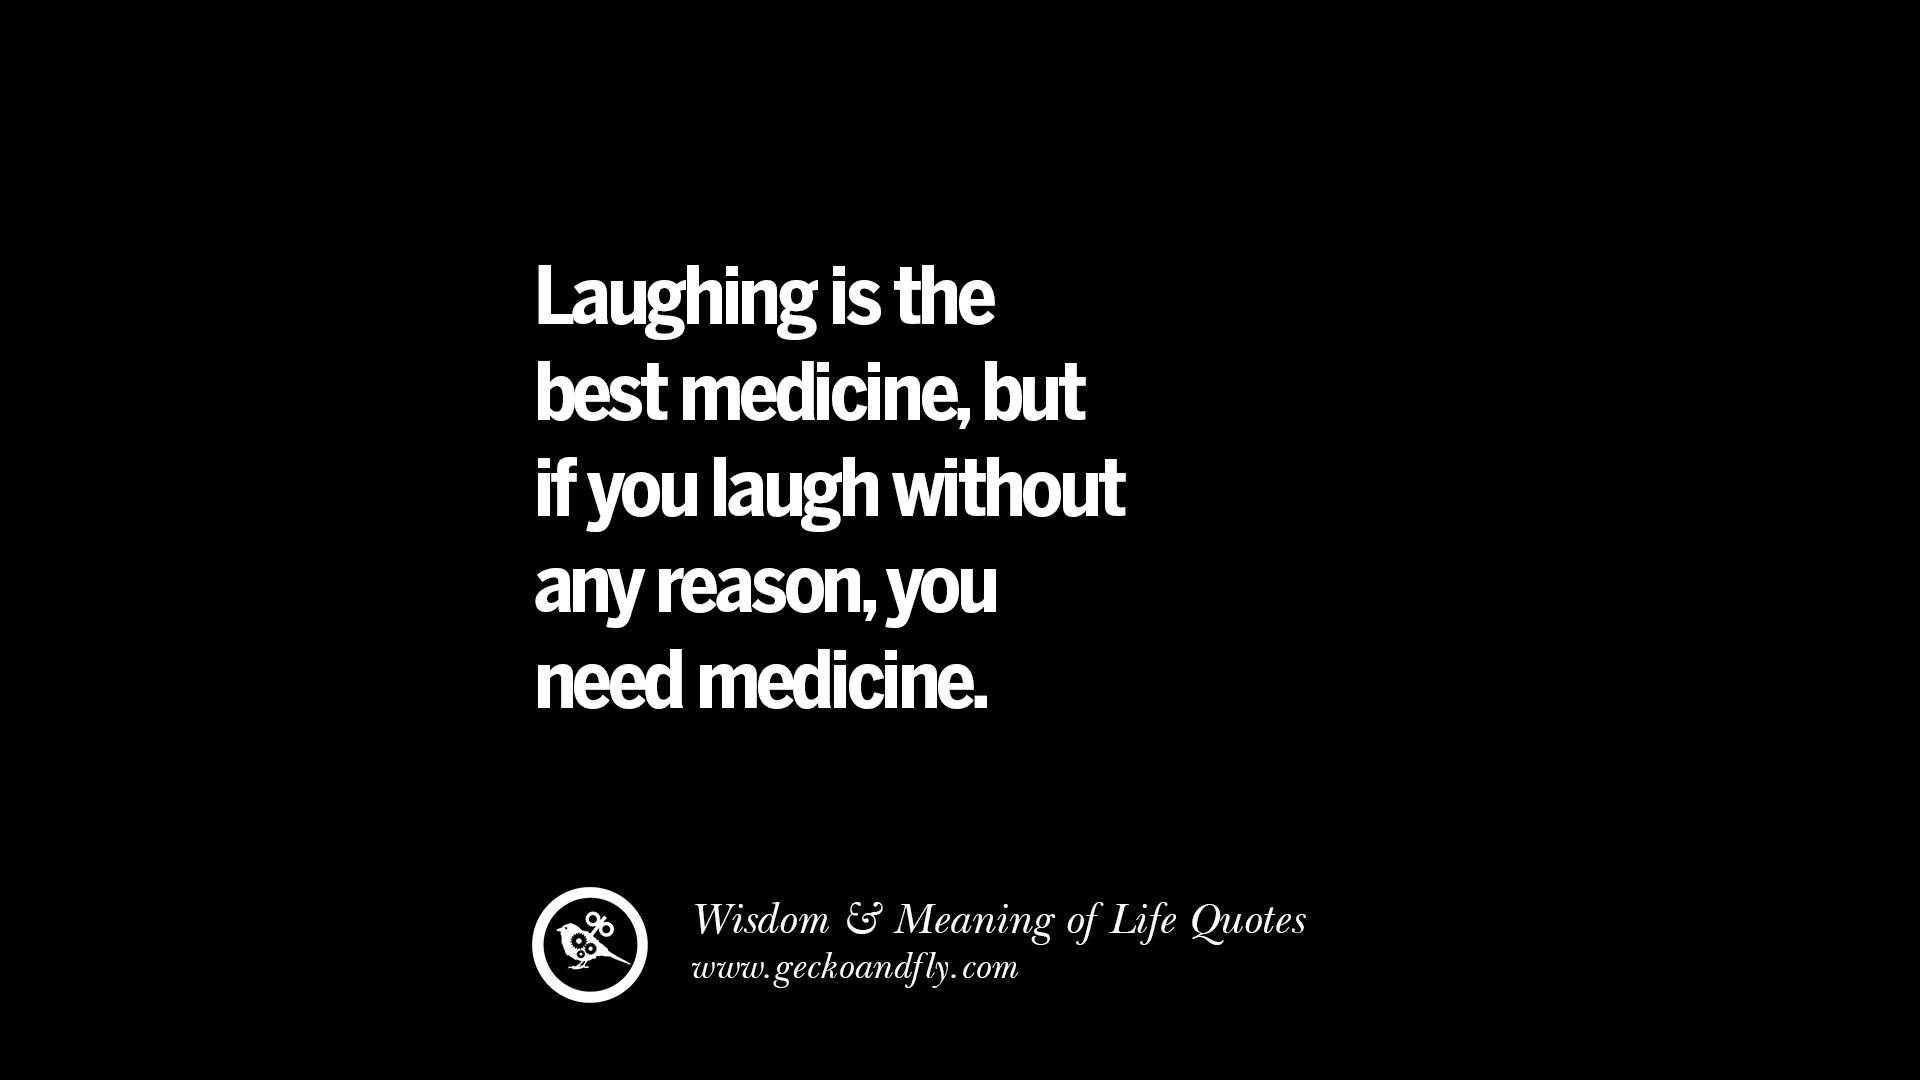 Wise Life Quotes 24 Funny Eye Opening Quotes About Wisdom Truth And Meaning Of